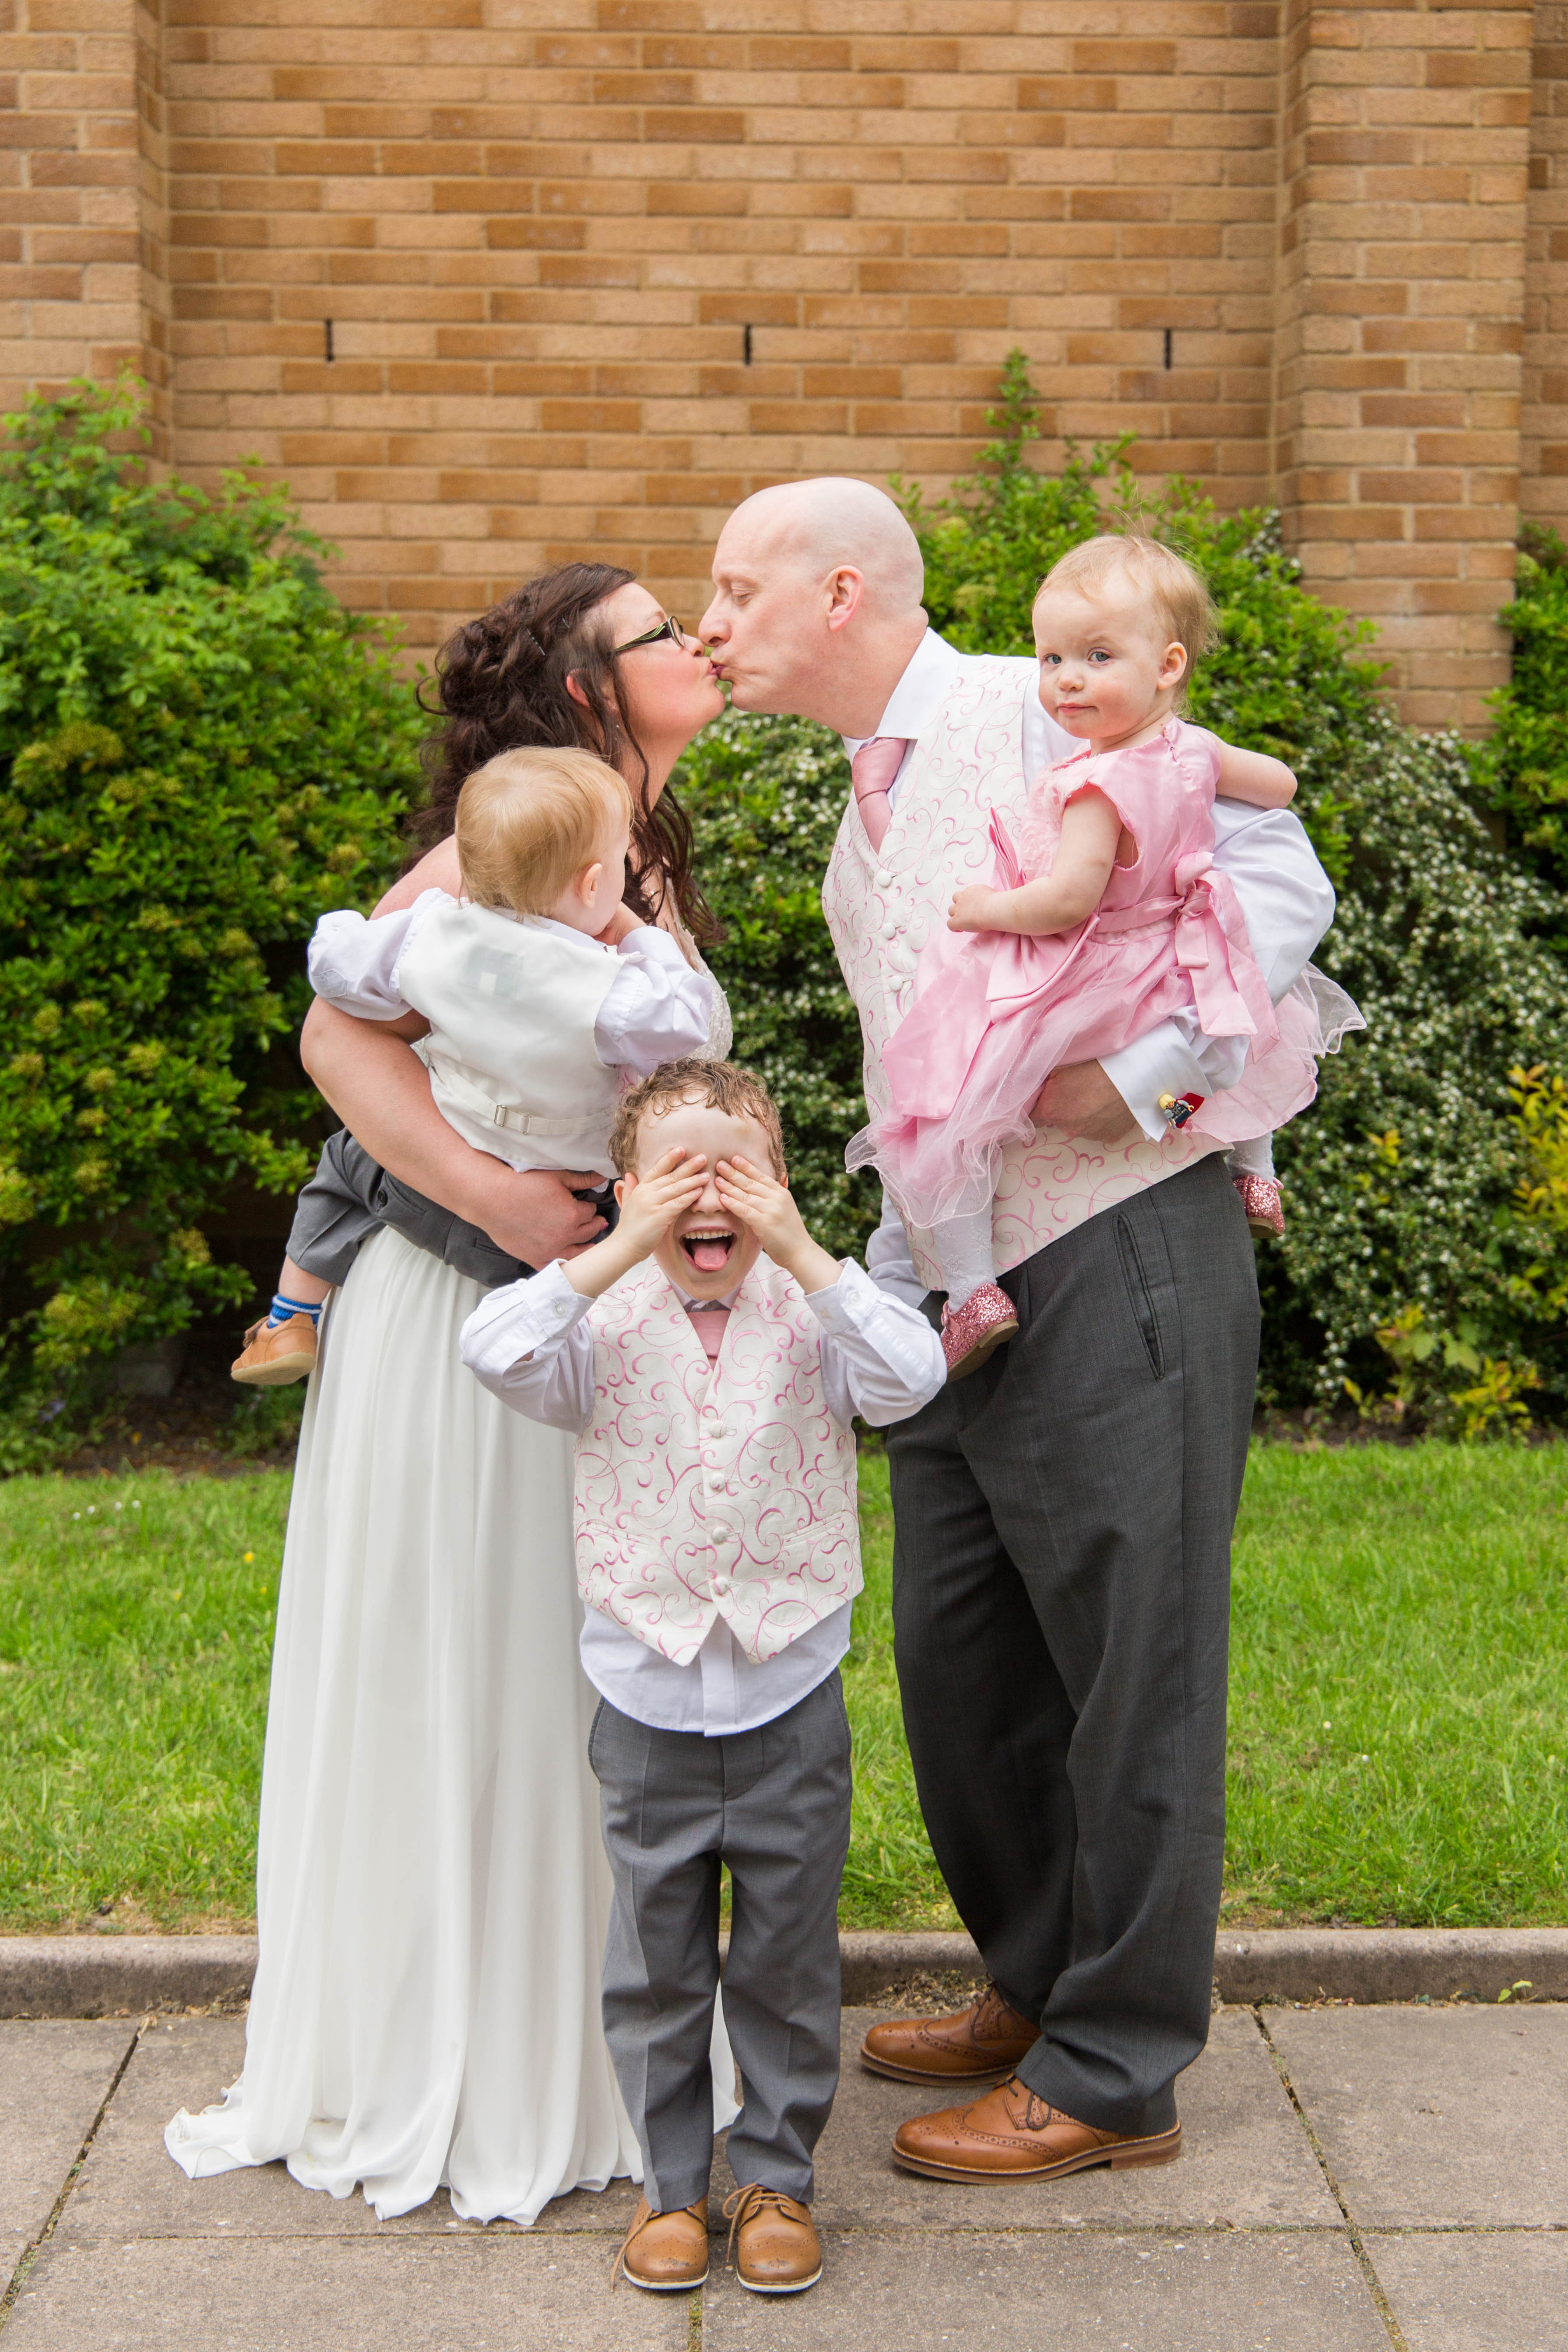 Oldham wedding photographer - family photo